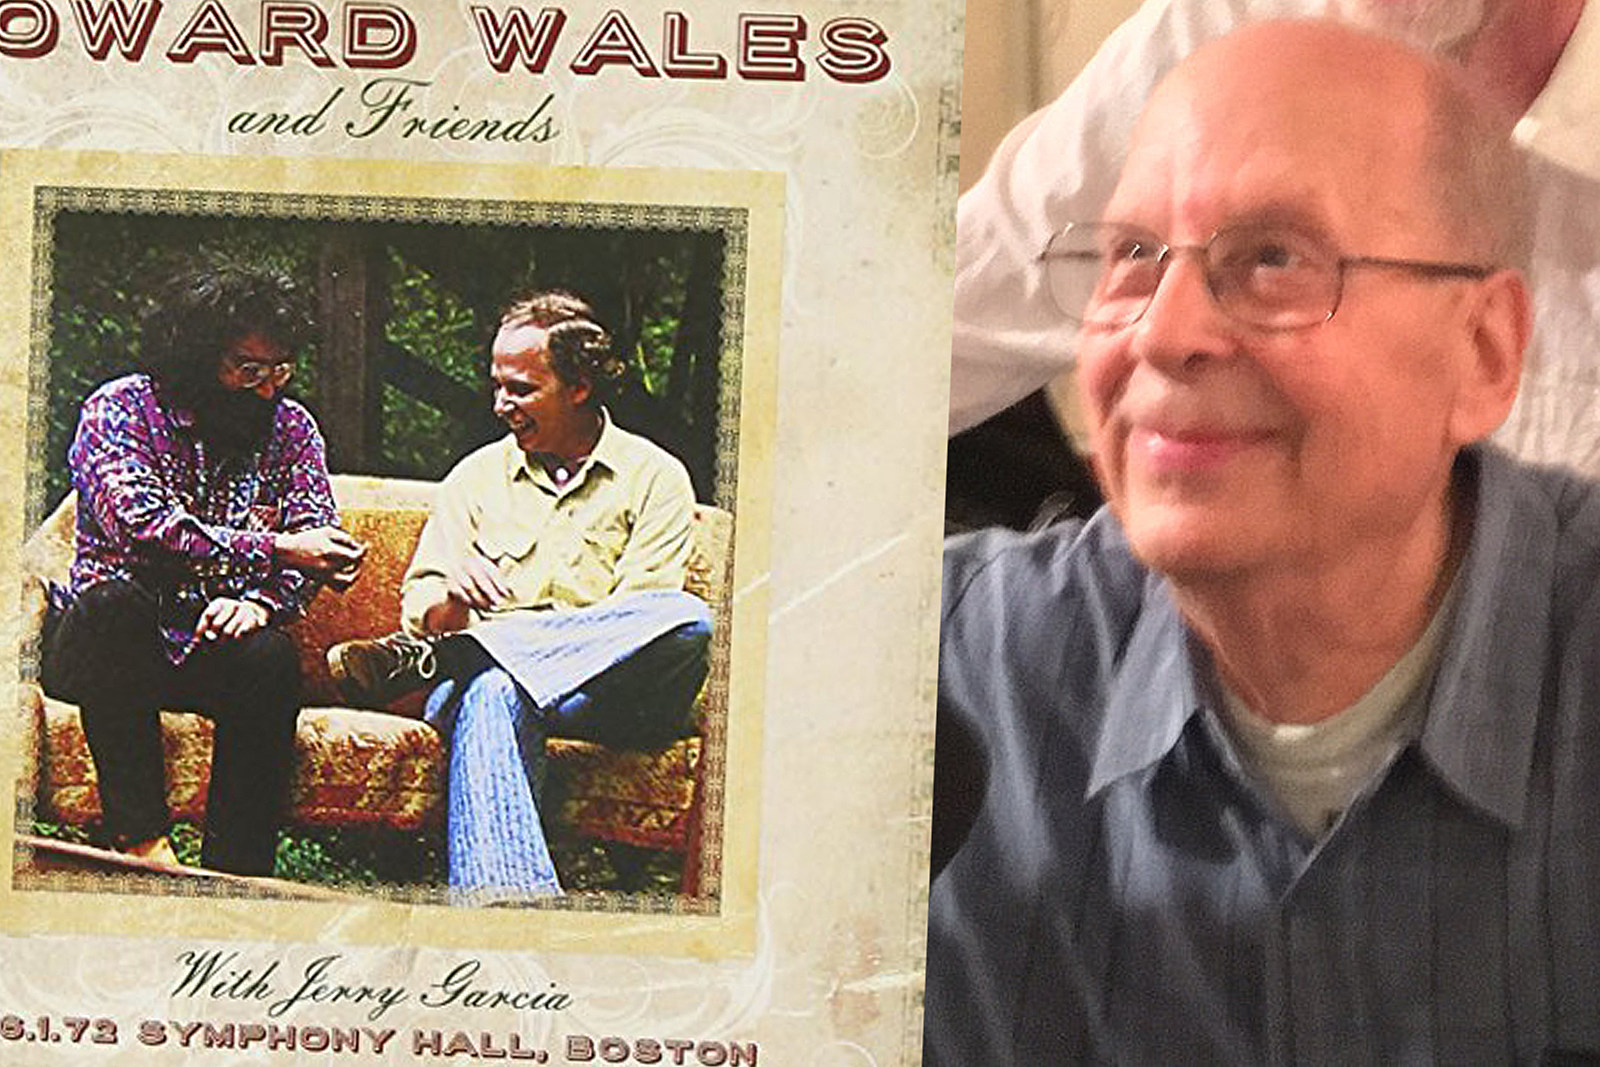 Jerry Garcia Collaborator Howard Wales Dead At 77 30 december 2009 (aged 50). jerry garcia collaborator howard wales